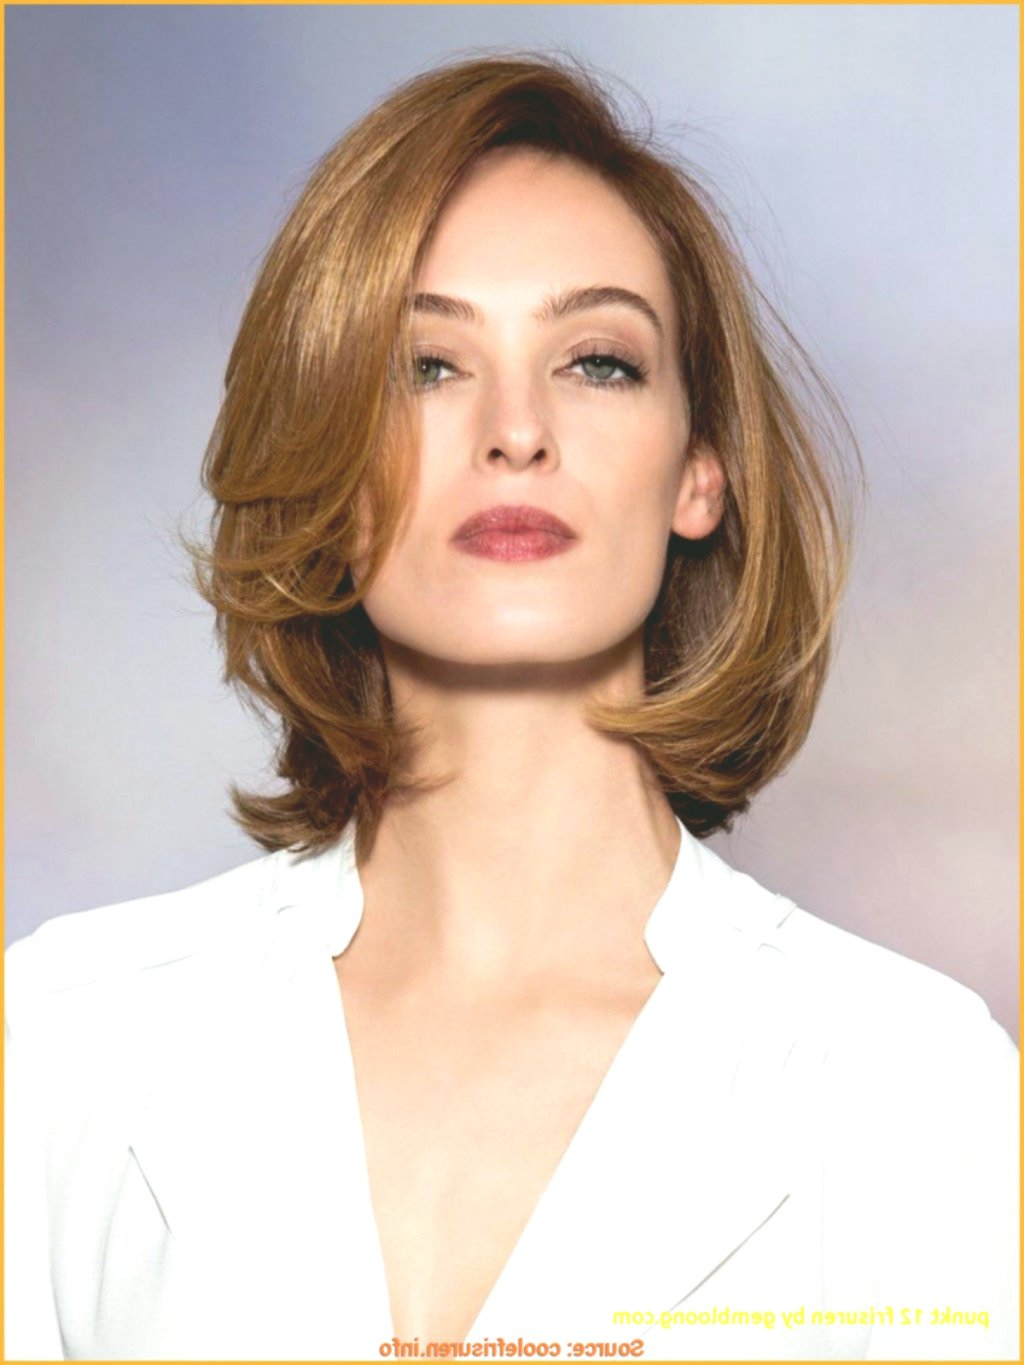 lovely short hairstyles style plan-Best Of Short Hairstyles Styling Photo